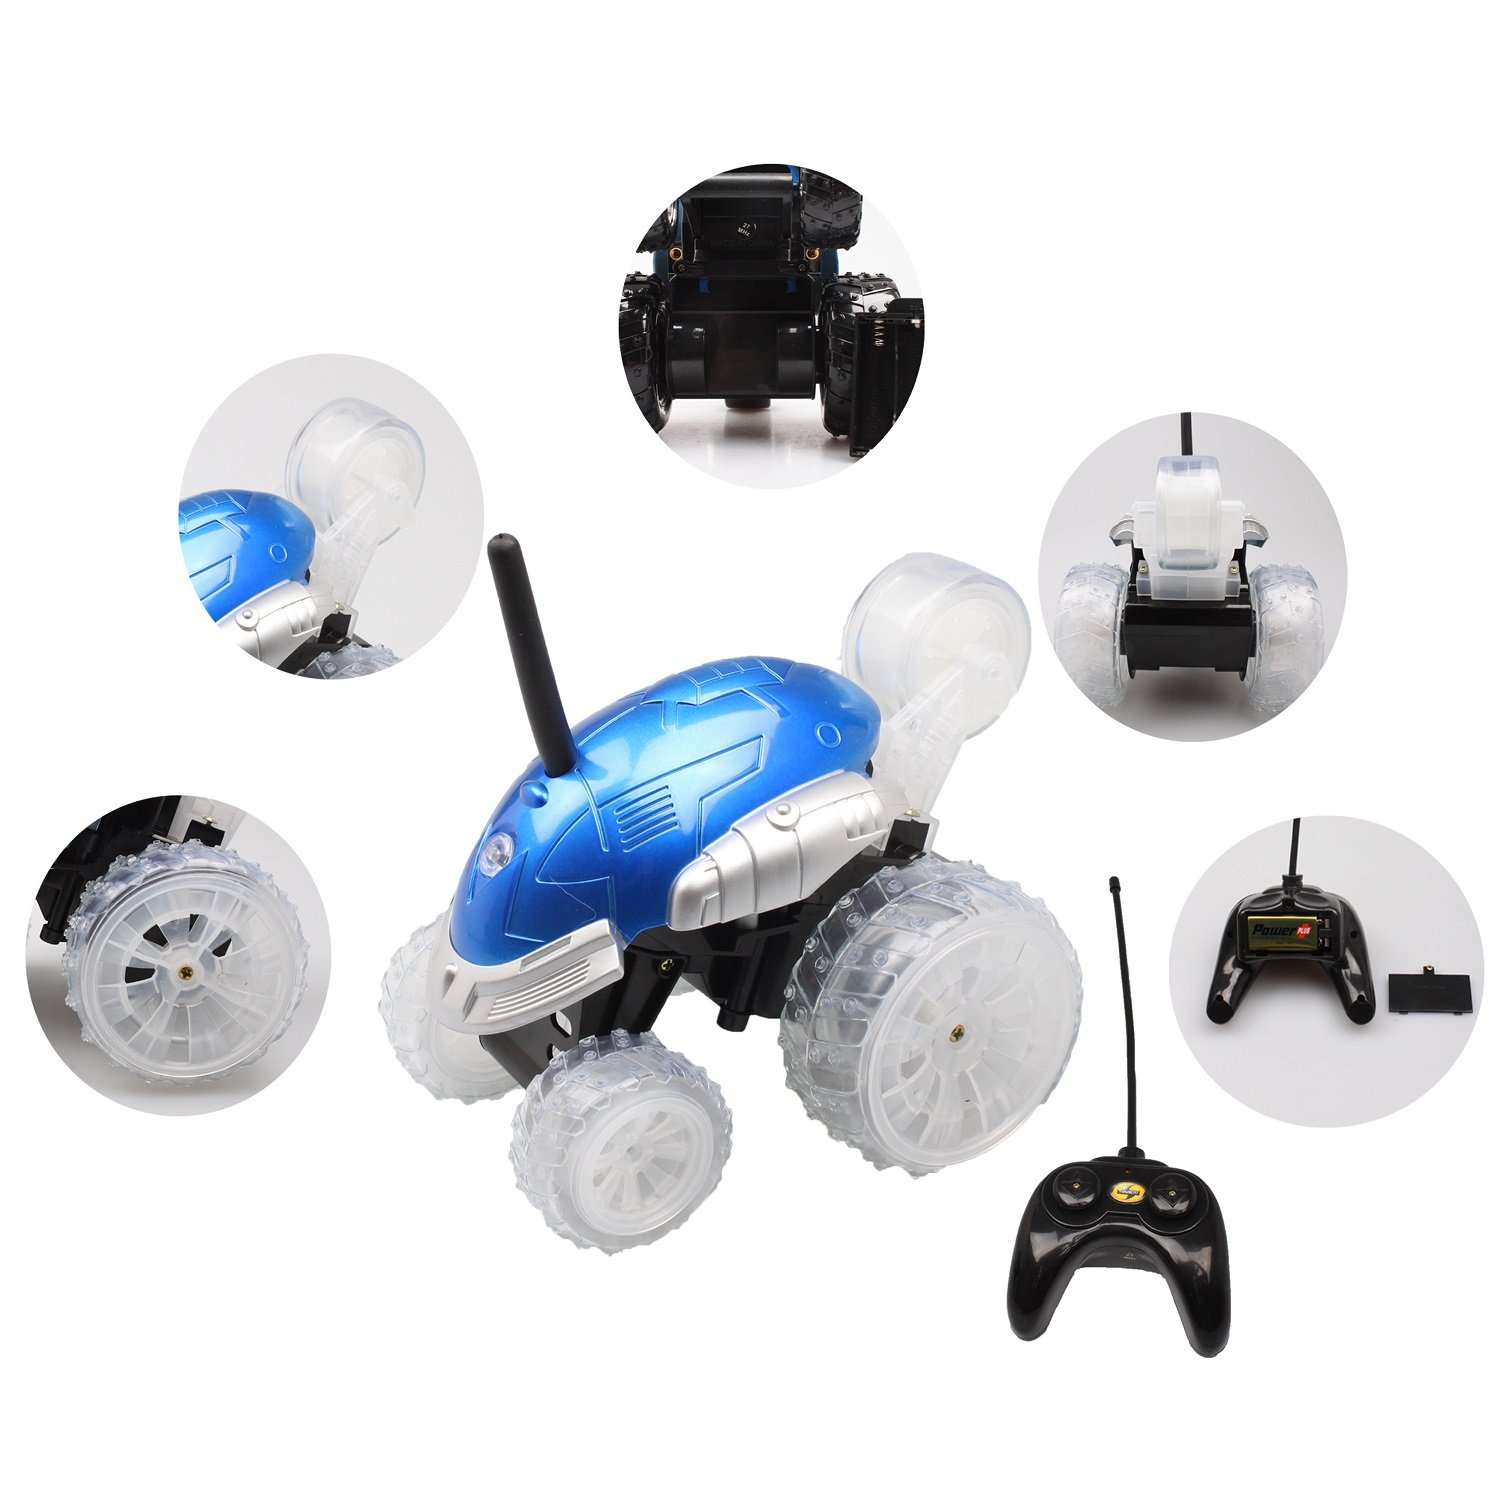 GranVela® yinrun 10031 RC Monster Spinning coche extrema ...